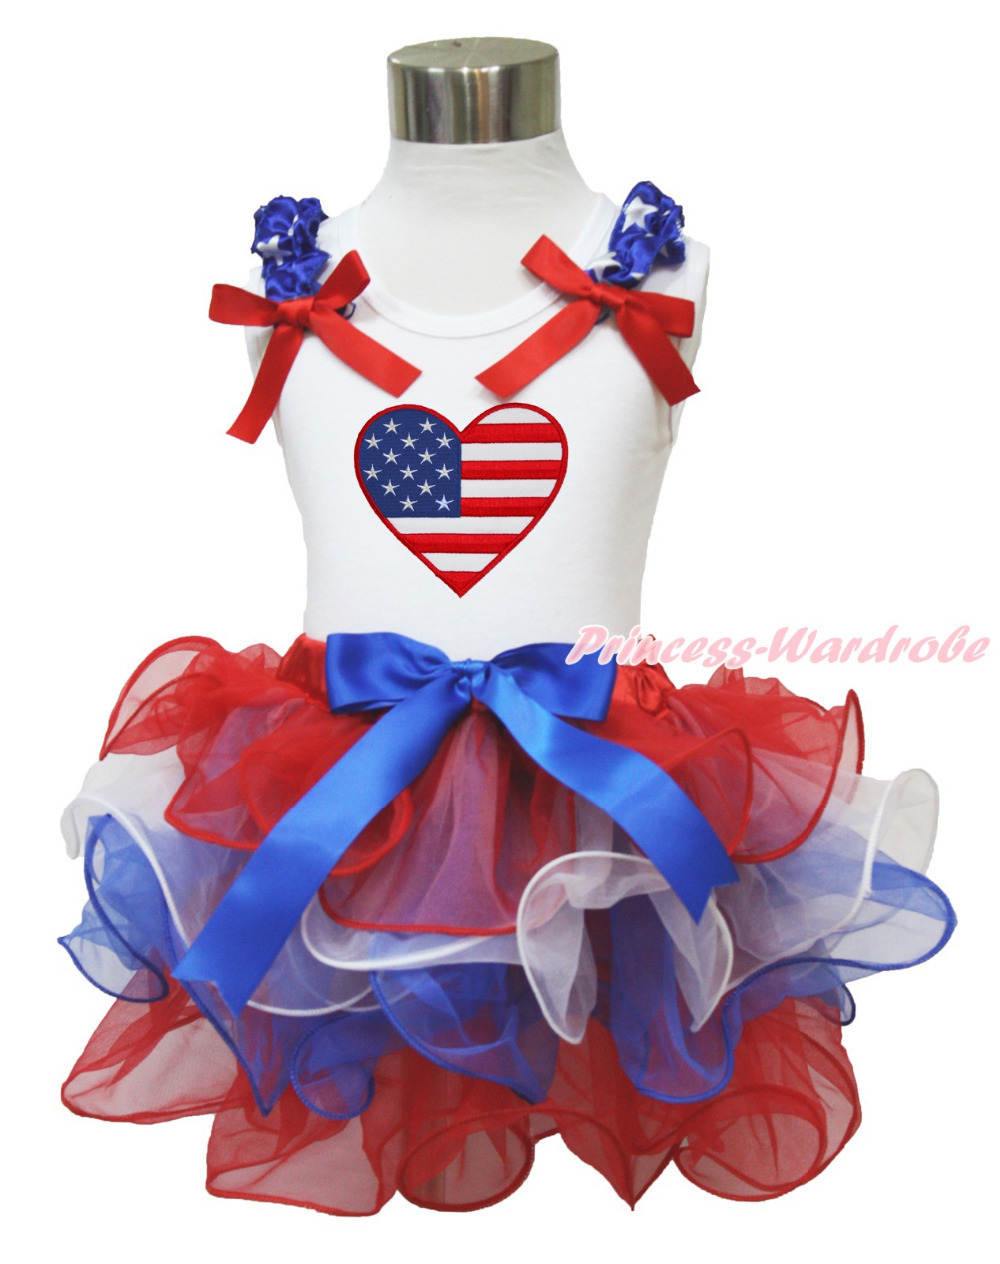 4th July USA Flag Heart White Long Sleeves Pettitop Red White Blue Petal Pettiskirt NB-8Y MAMH221 4th july america flag style stripe pettiskirt white ruffle tank top 2pc set 1 8year mamg1143